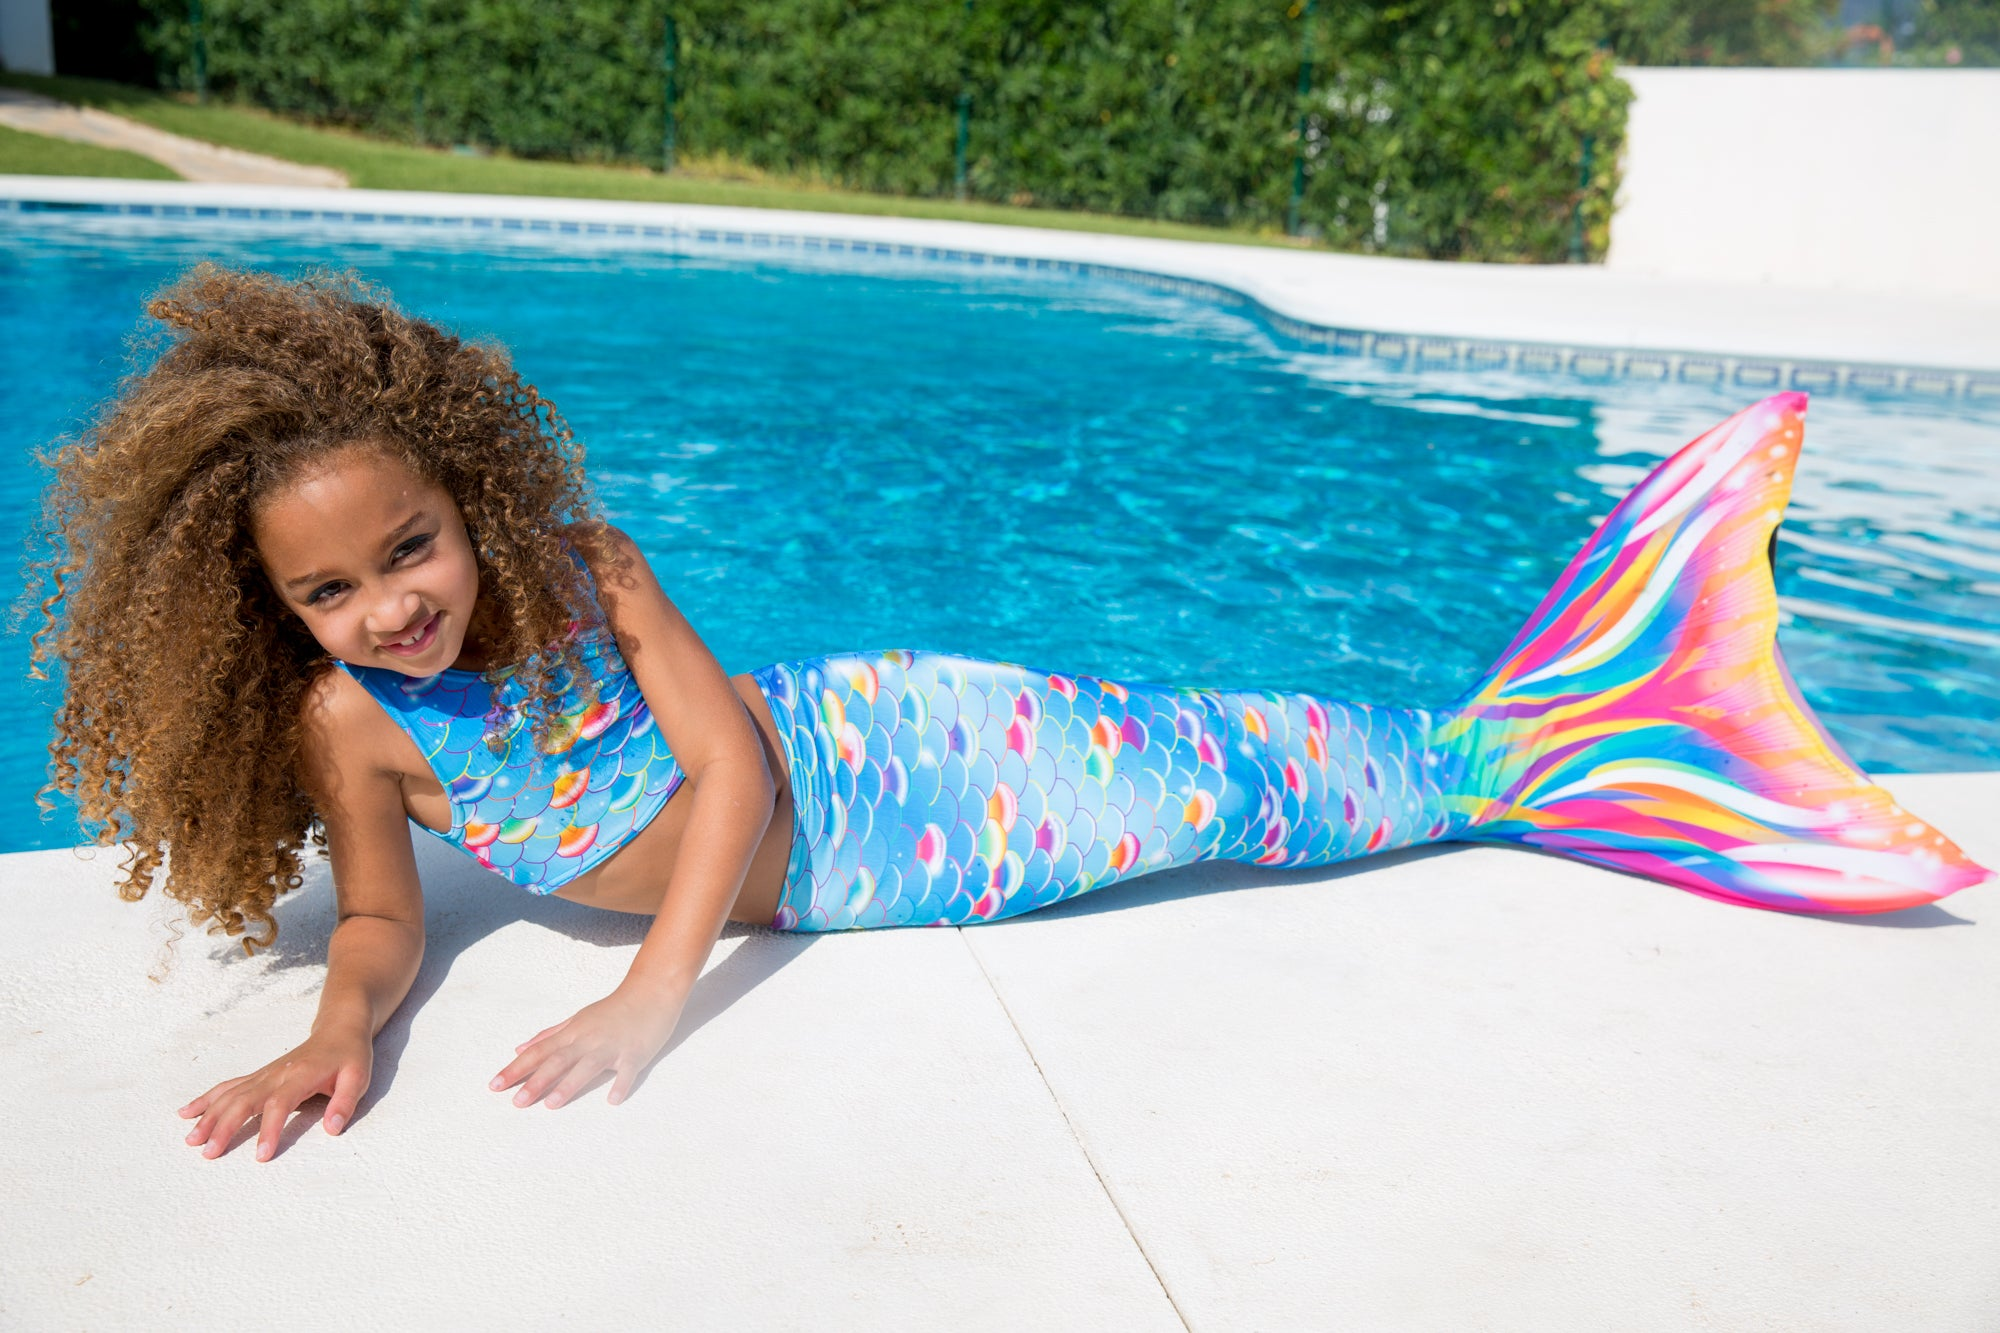 Mermaid Tails for Holidays